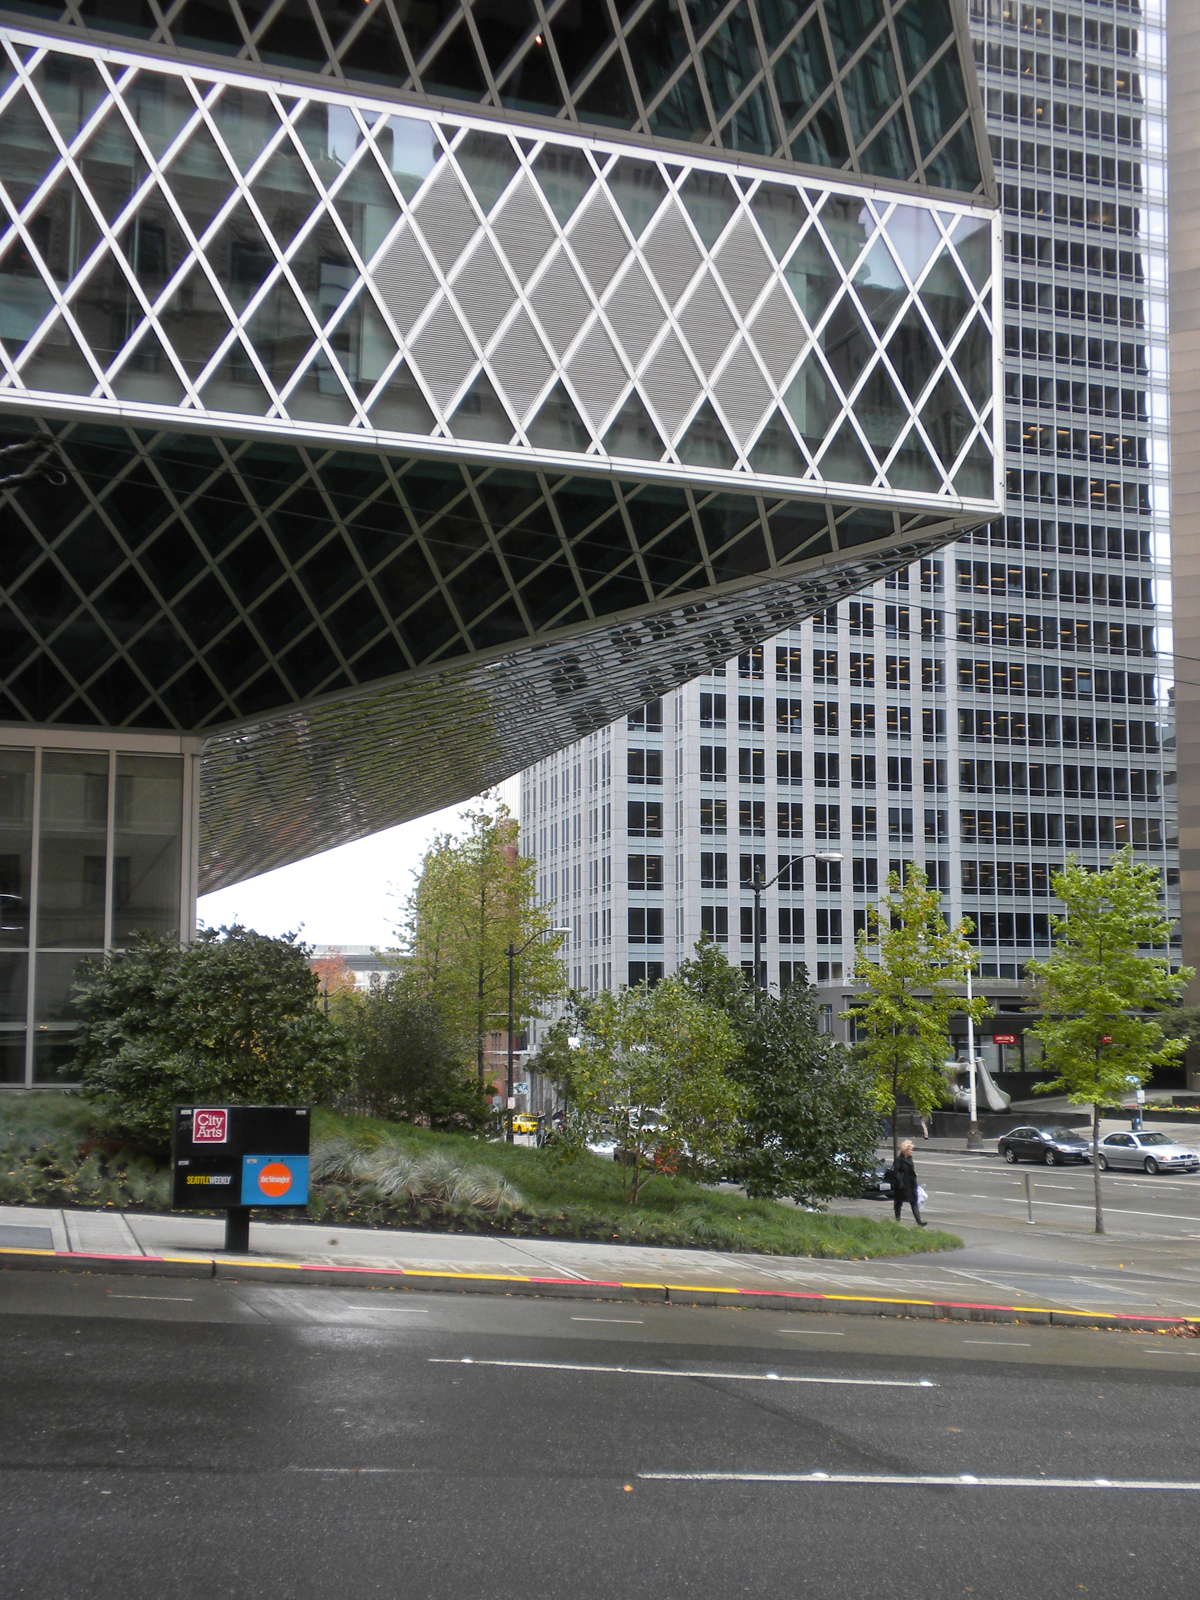 "My first stop after lunch was the <a href=""http://www.spl.org/default.asp?pageID=branch_central_building_factsheet&branchID=1"">Seattle Public Library's Central Library</a>, designed by <a href=""http://www.oma.nl/"">OMA</a> with local design firm <a href=""h"